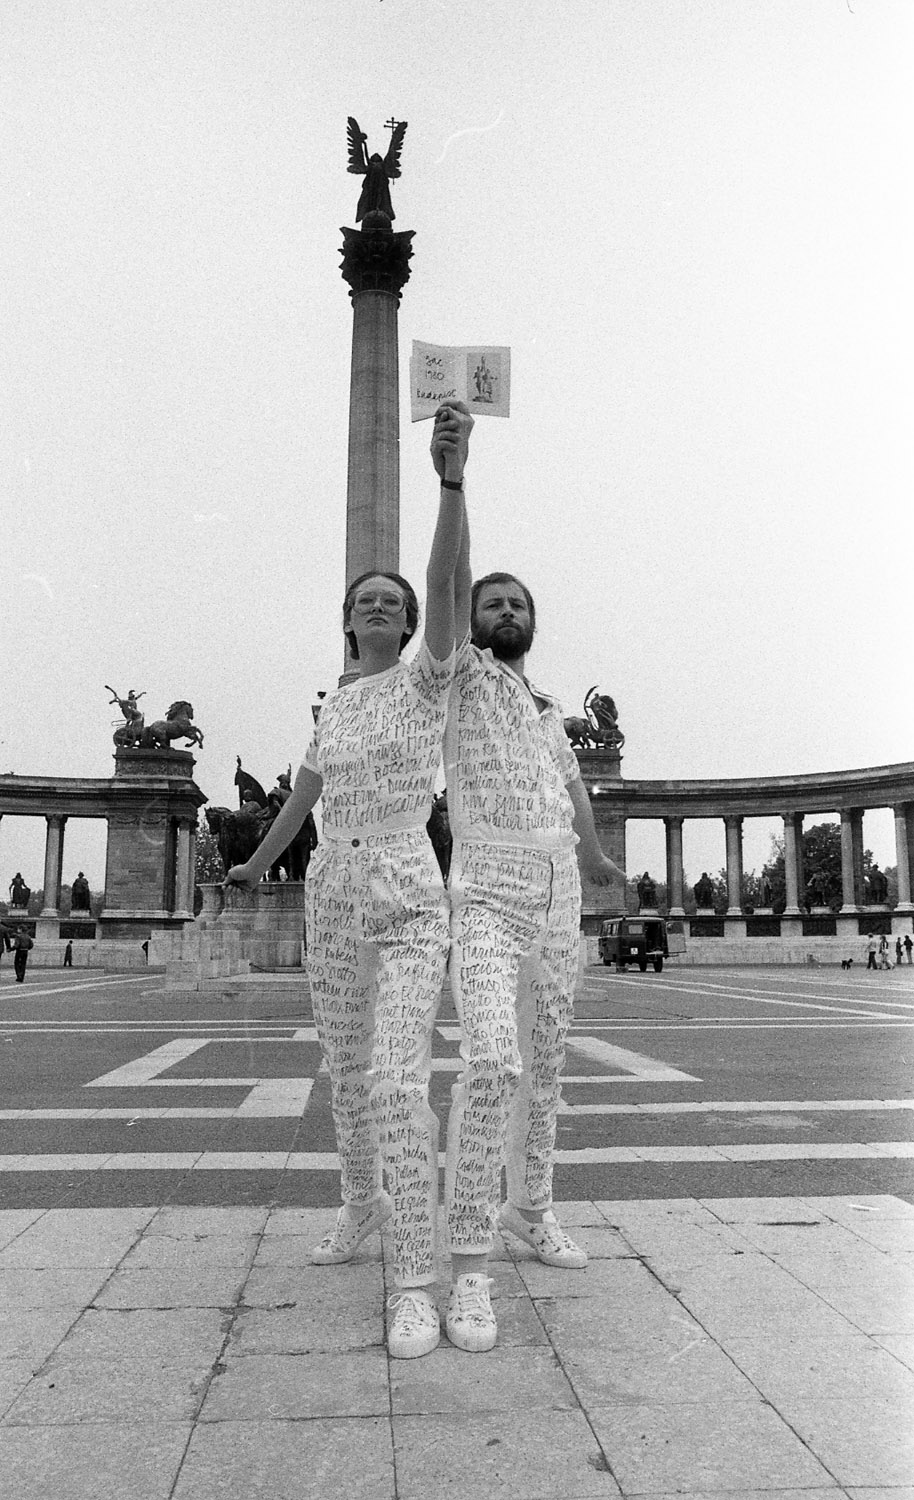 György Galántai: 'Homage to Vera Mukhina' performance with Julia Klaniczay and G. A. Cavellini, May 24, 1980, Hősök tere (Heroes´ Square), Budapest